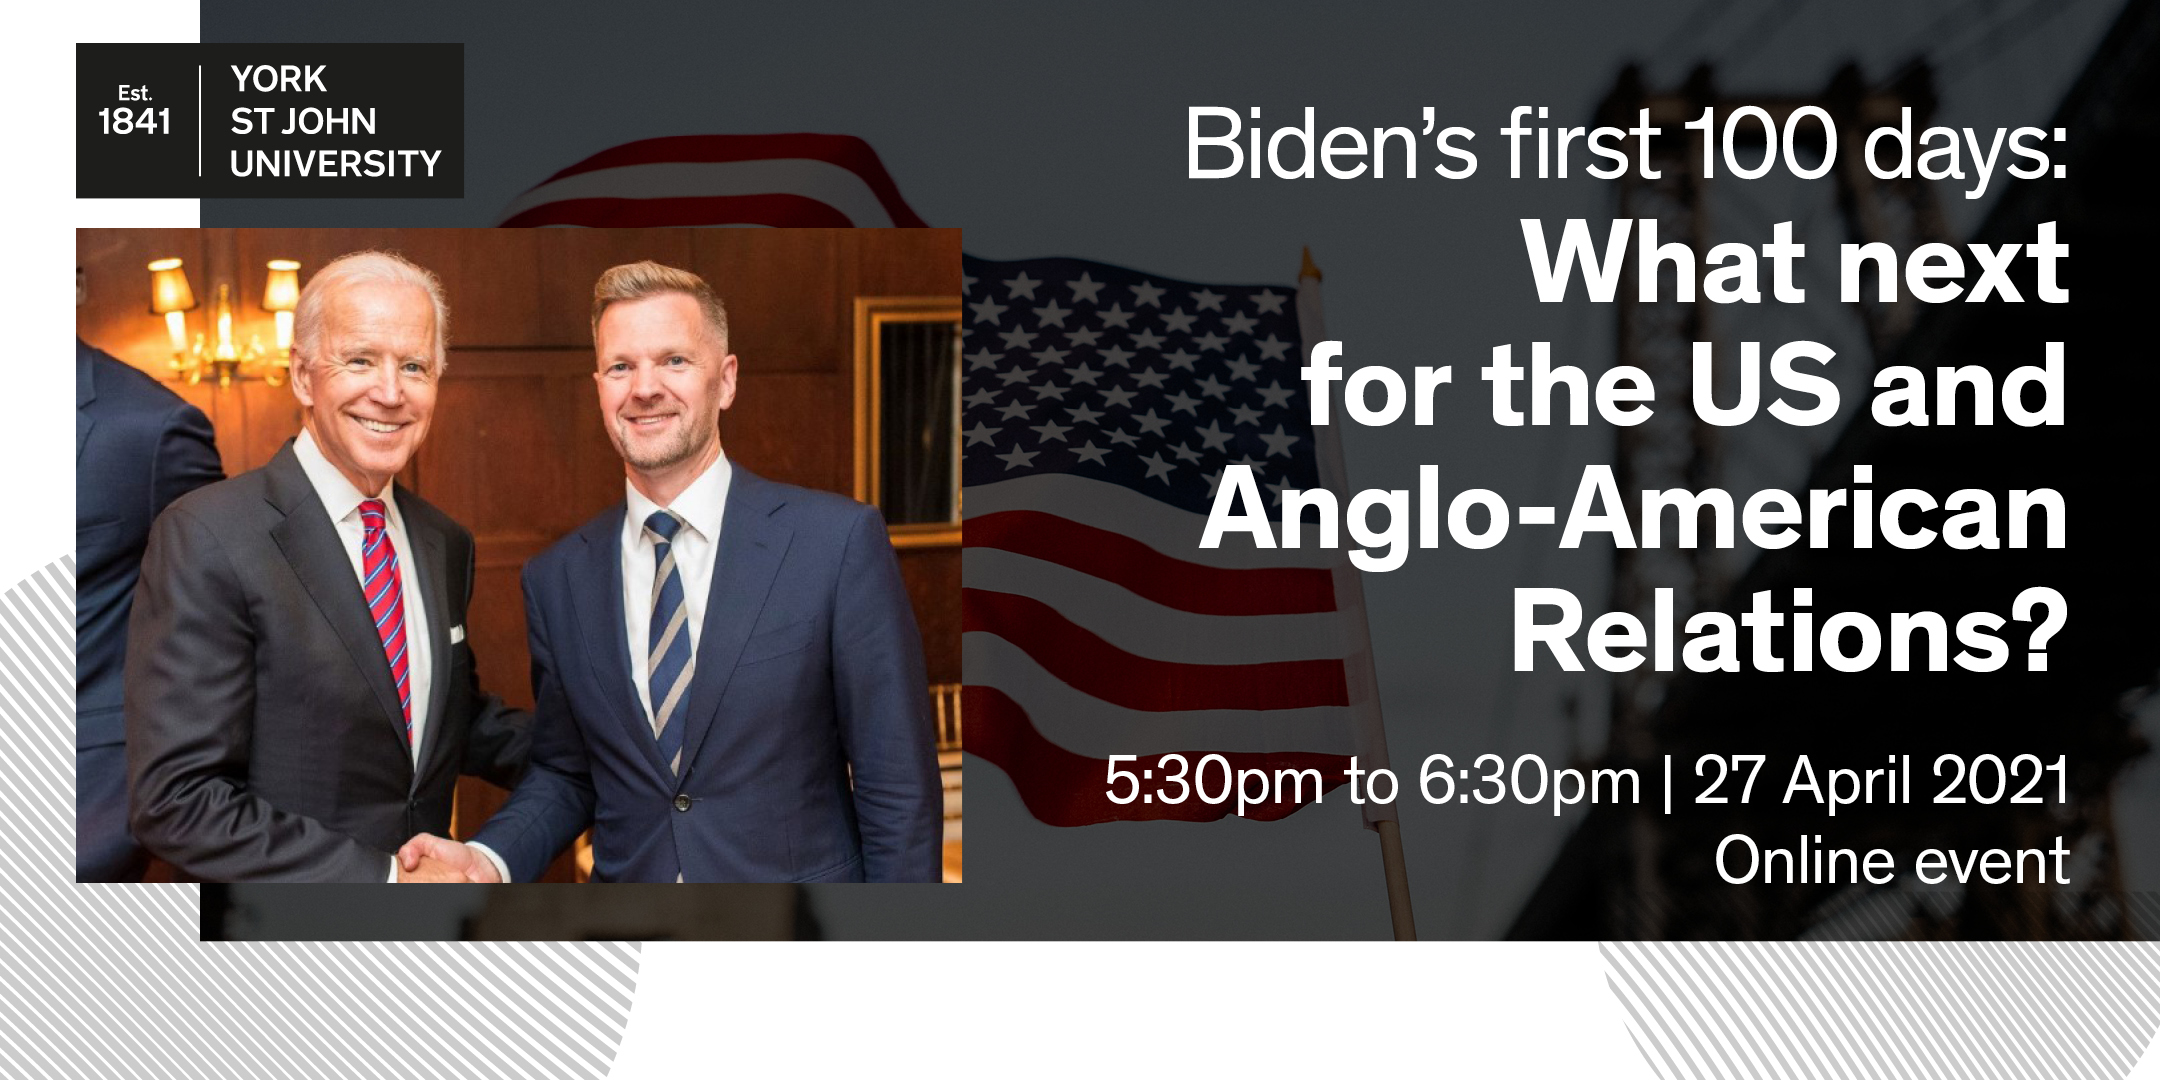 Biden's first 100 days: What next for the US and Anglo-American relations?